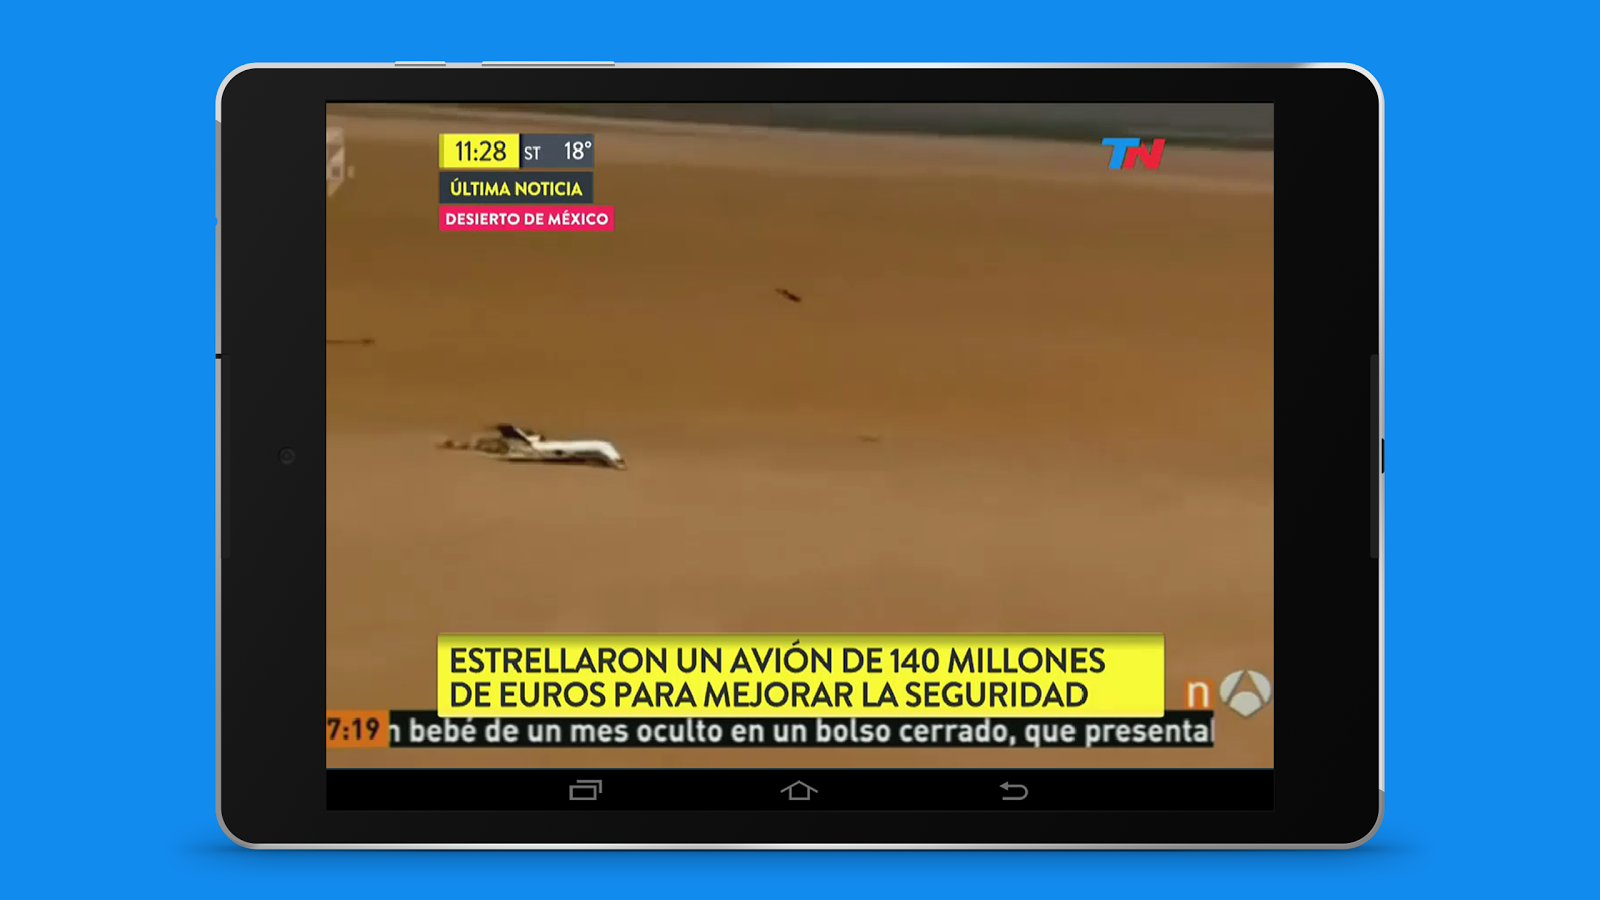 Tn todo noticias android apps on google play for App noticias android